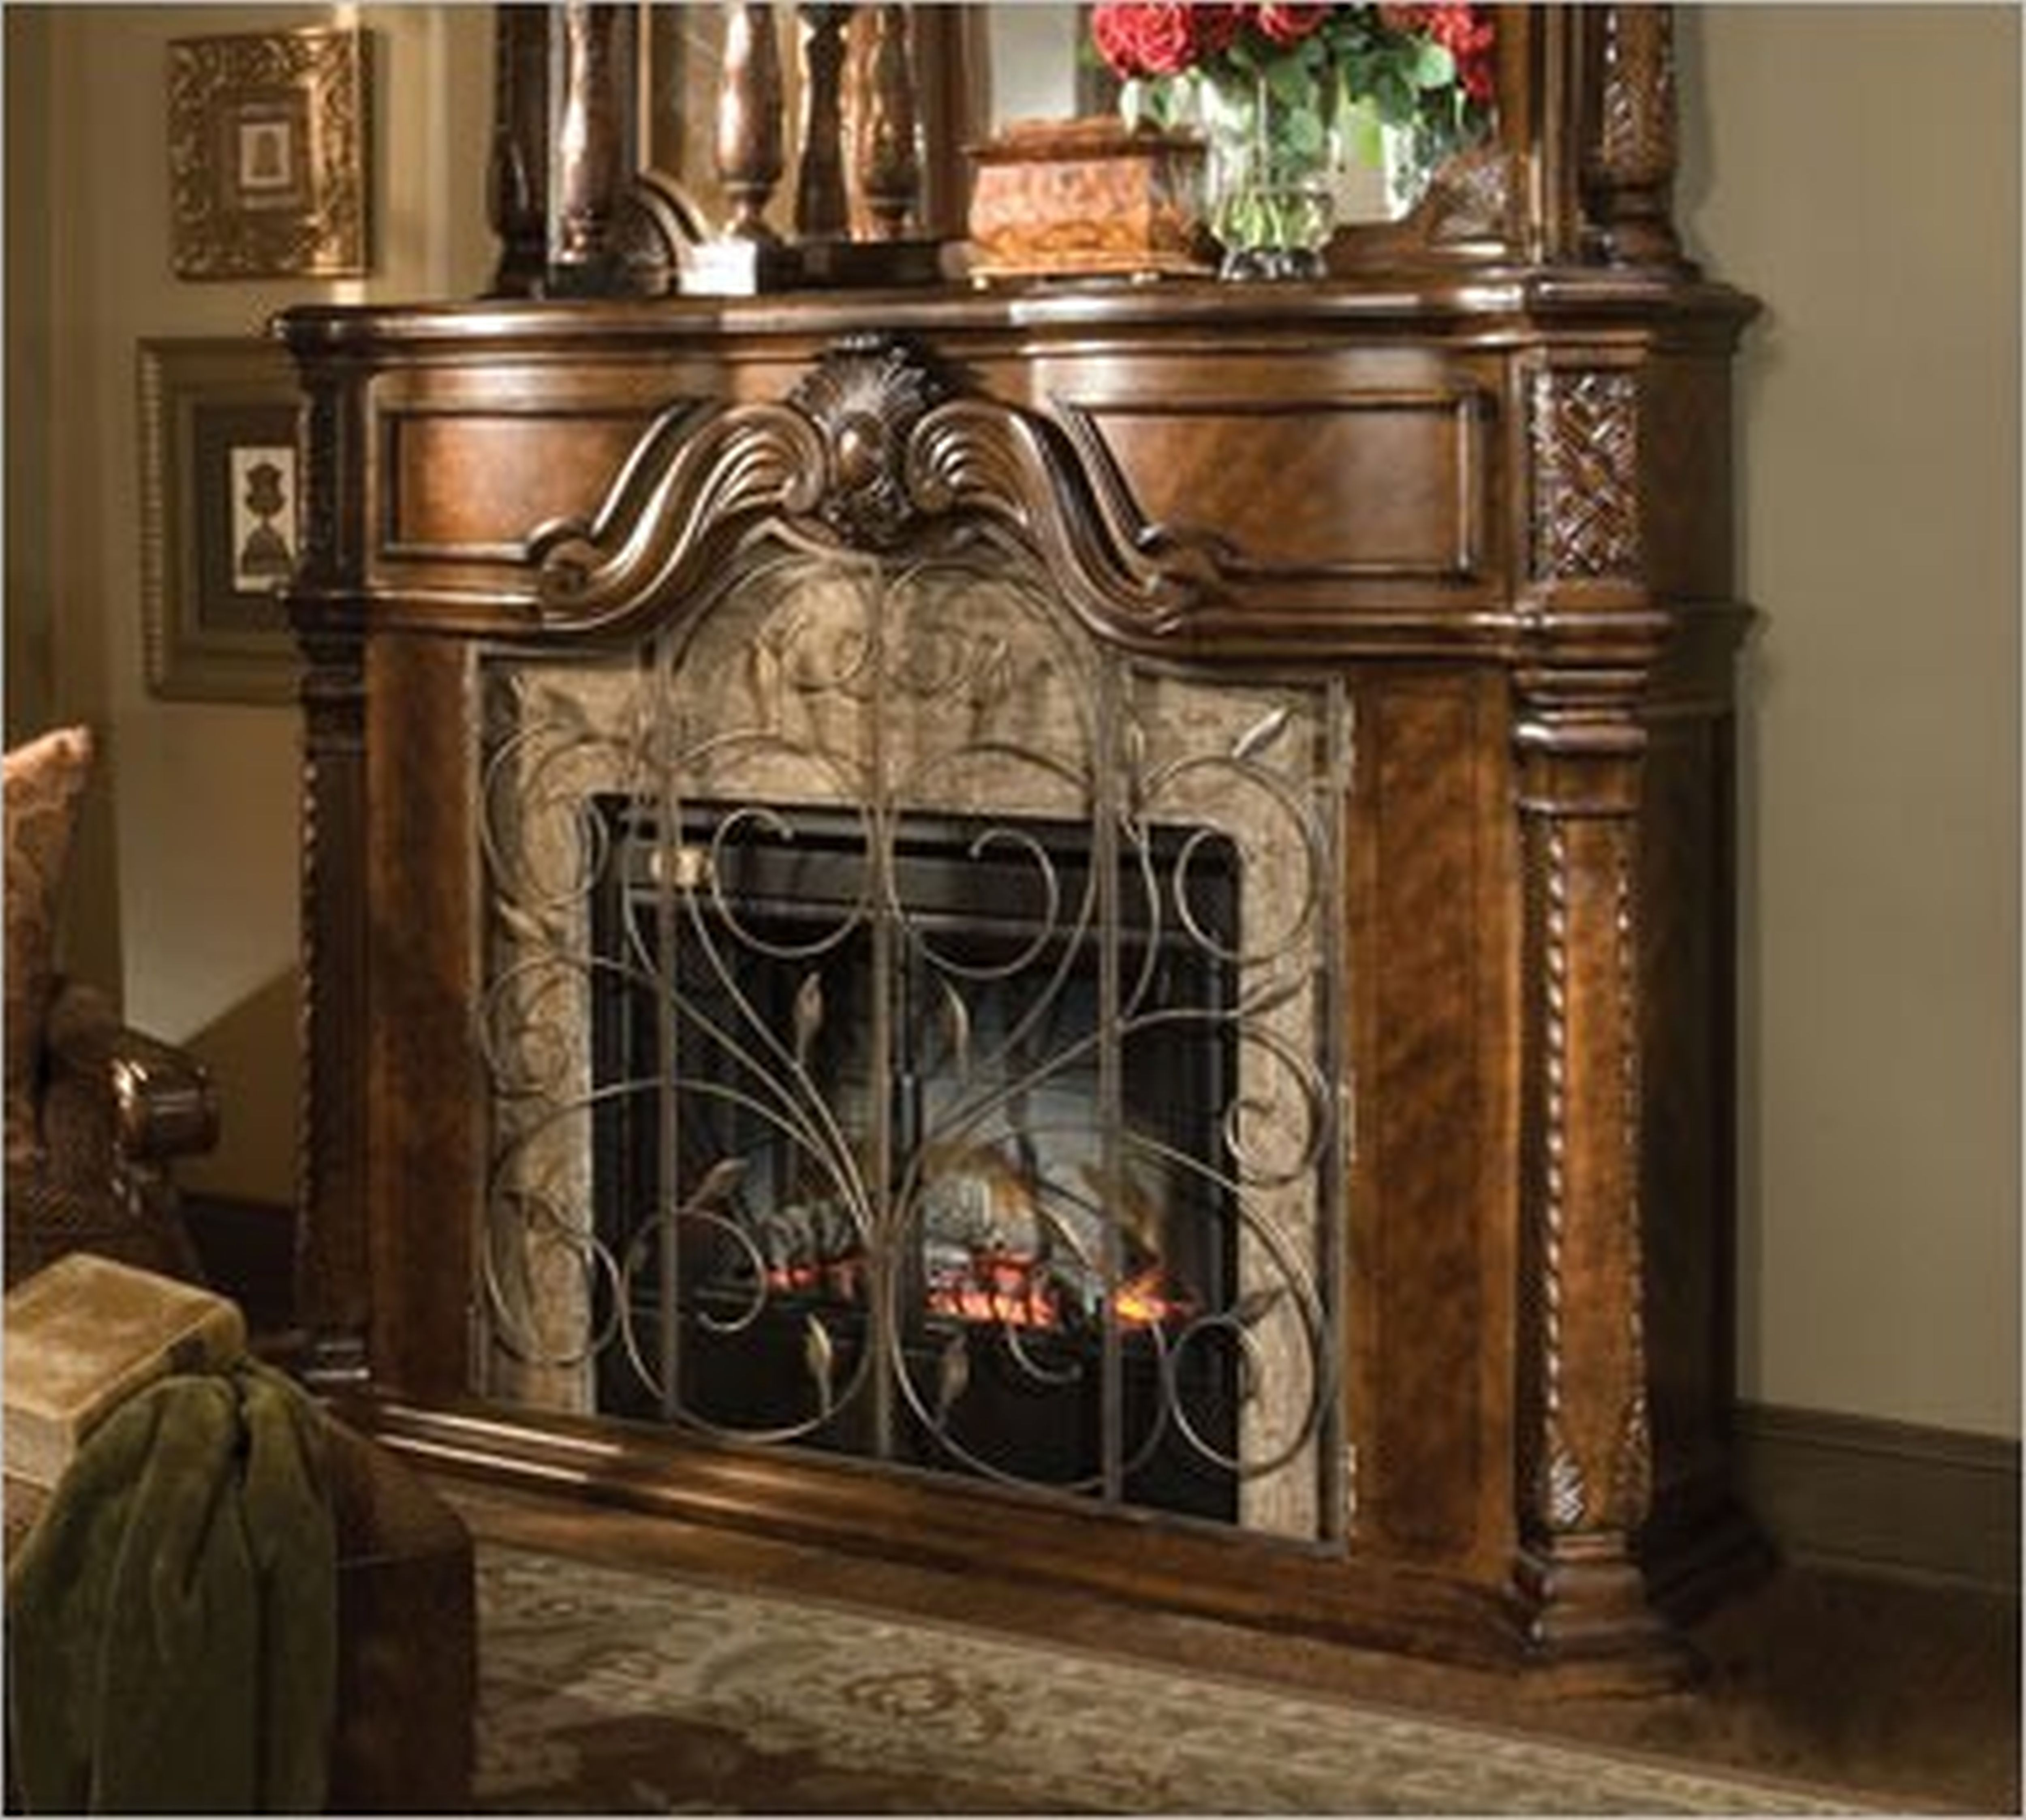 Antique Decorative Stones For Ethanol Fireplace and Antique Stone ...